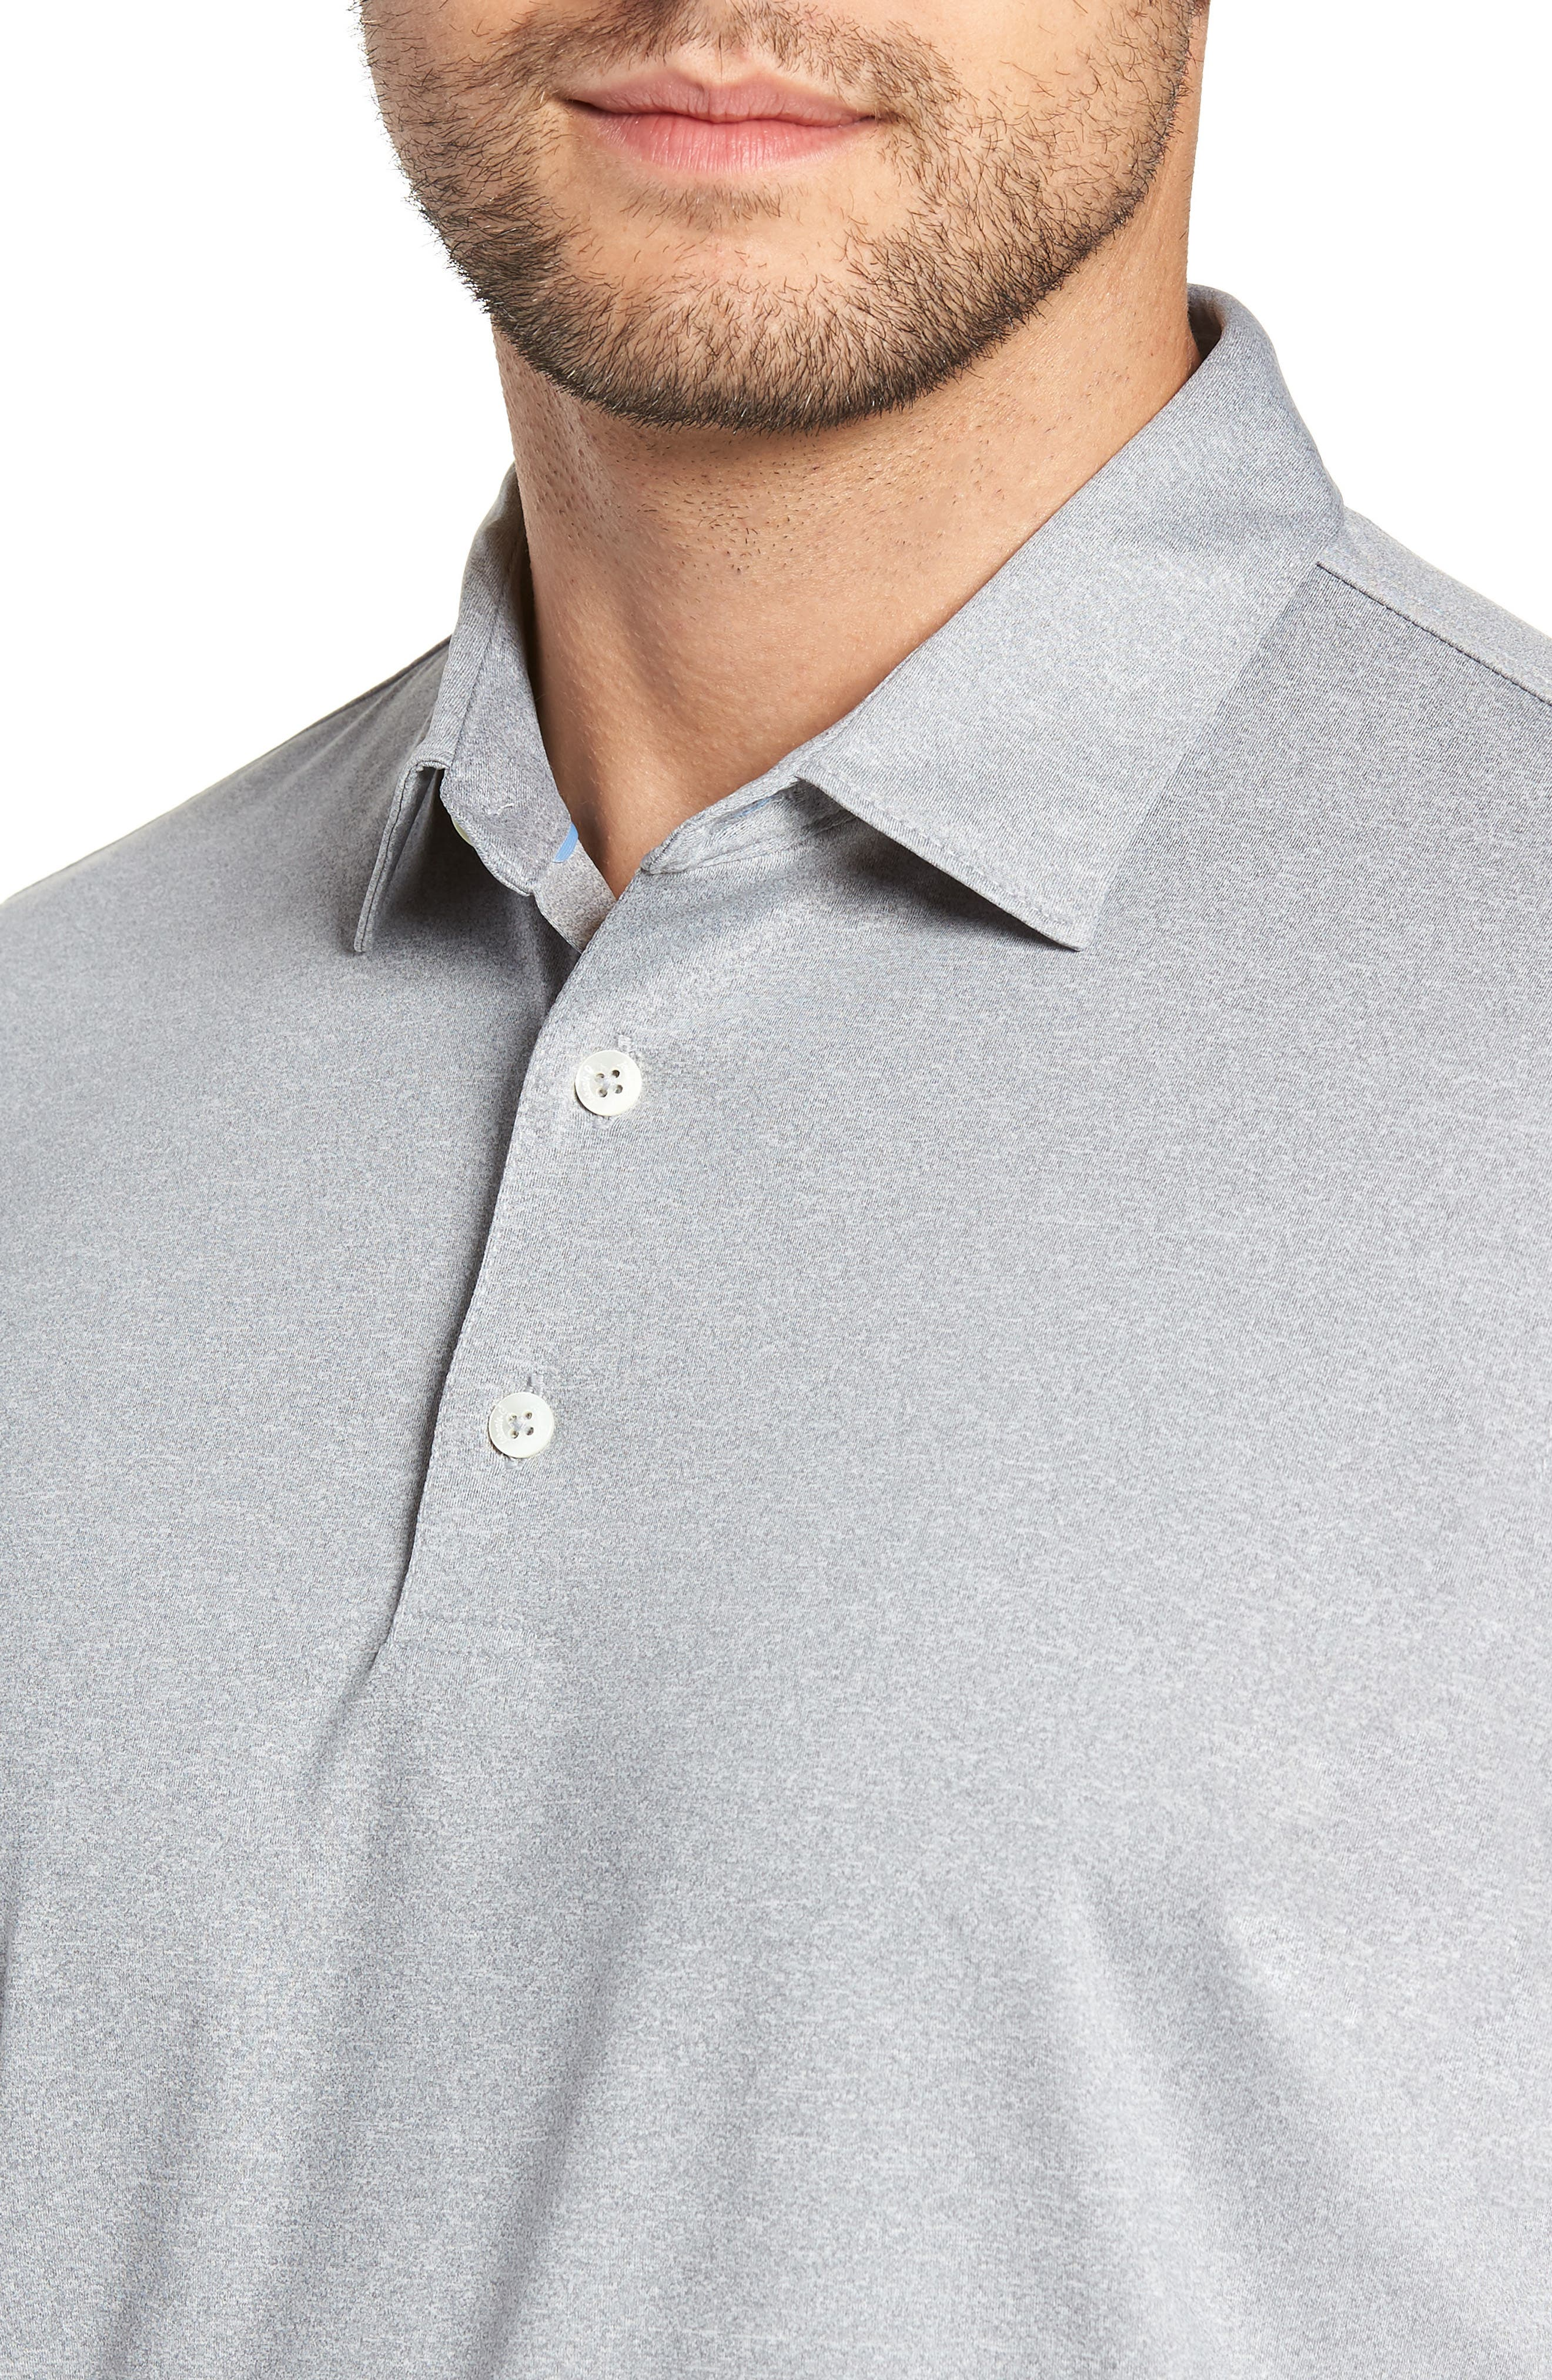 Birdie Classic Fit Performance Polo,                             Alternate thumbnail 4, color,                             METEOR